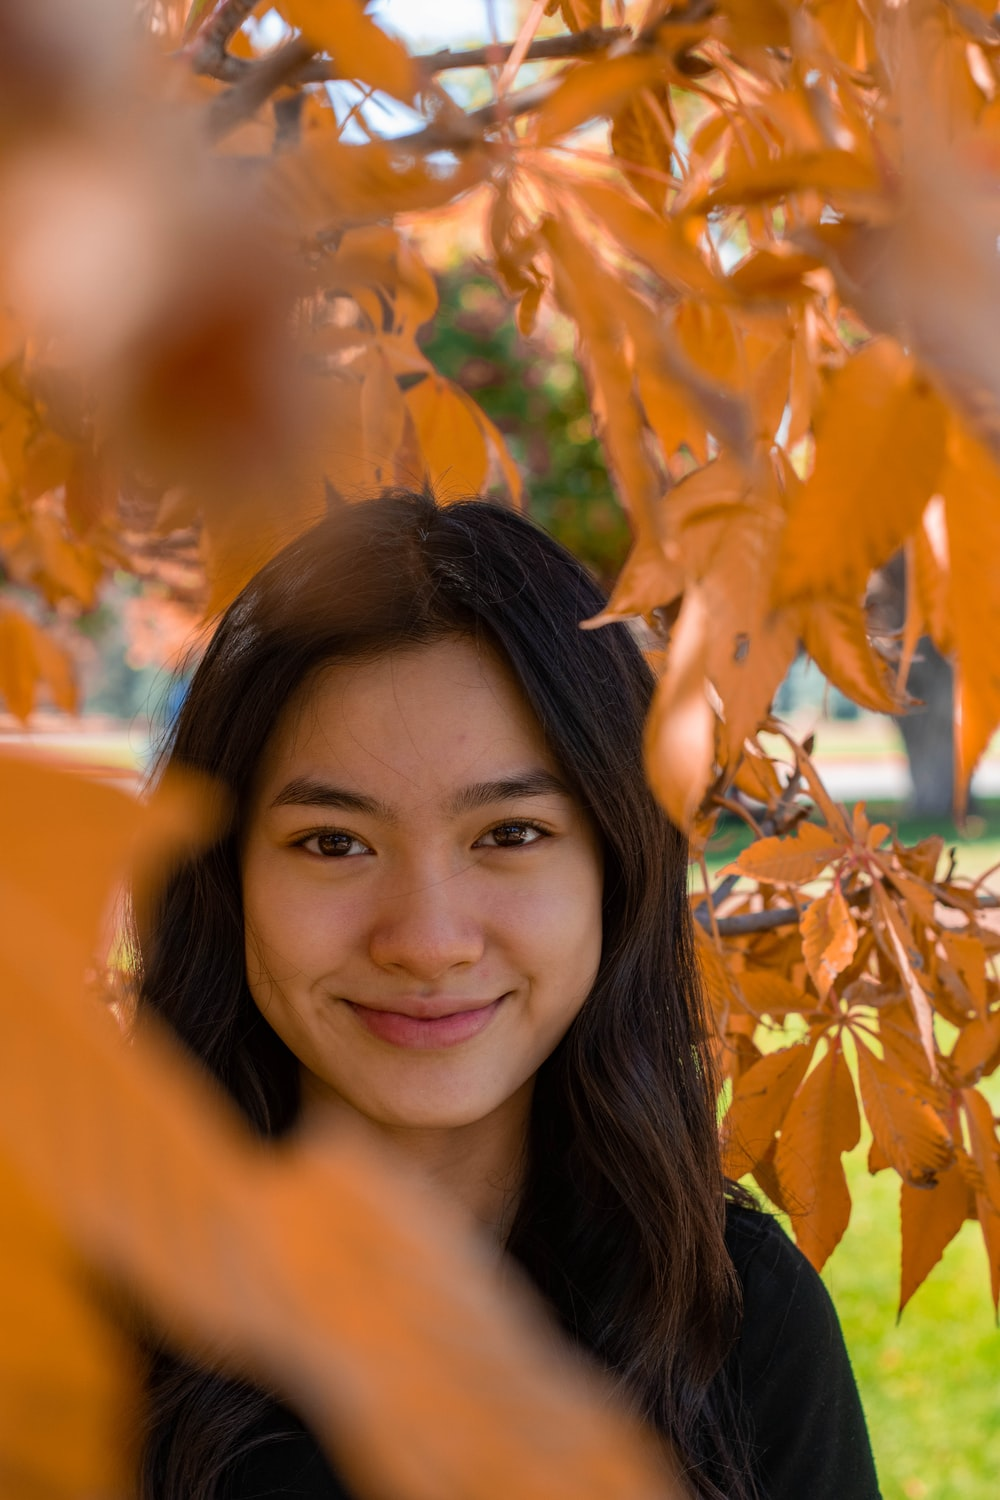 woman smiling near brown leaves during daytime